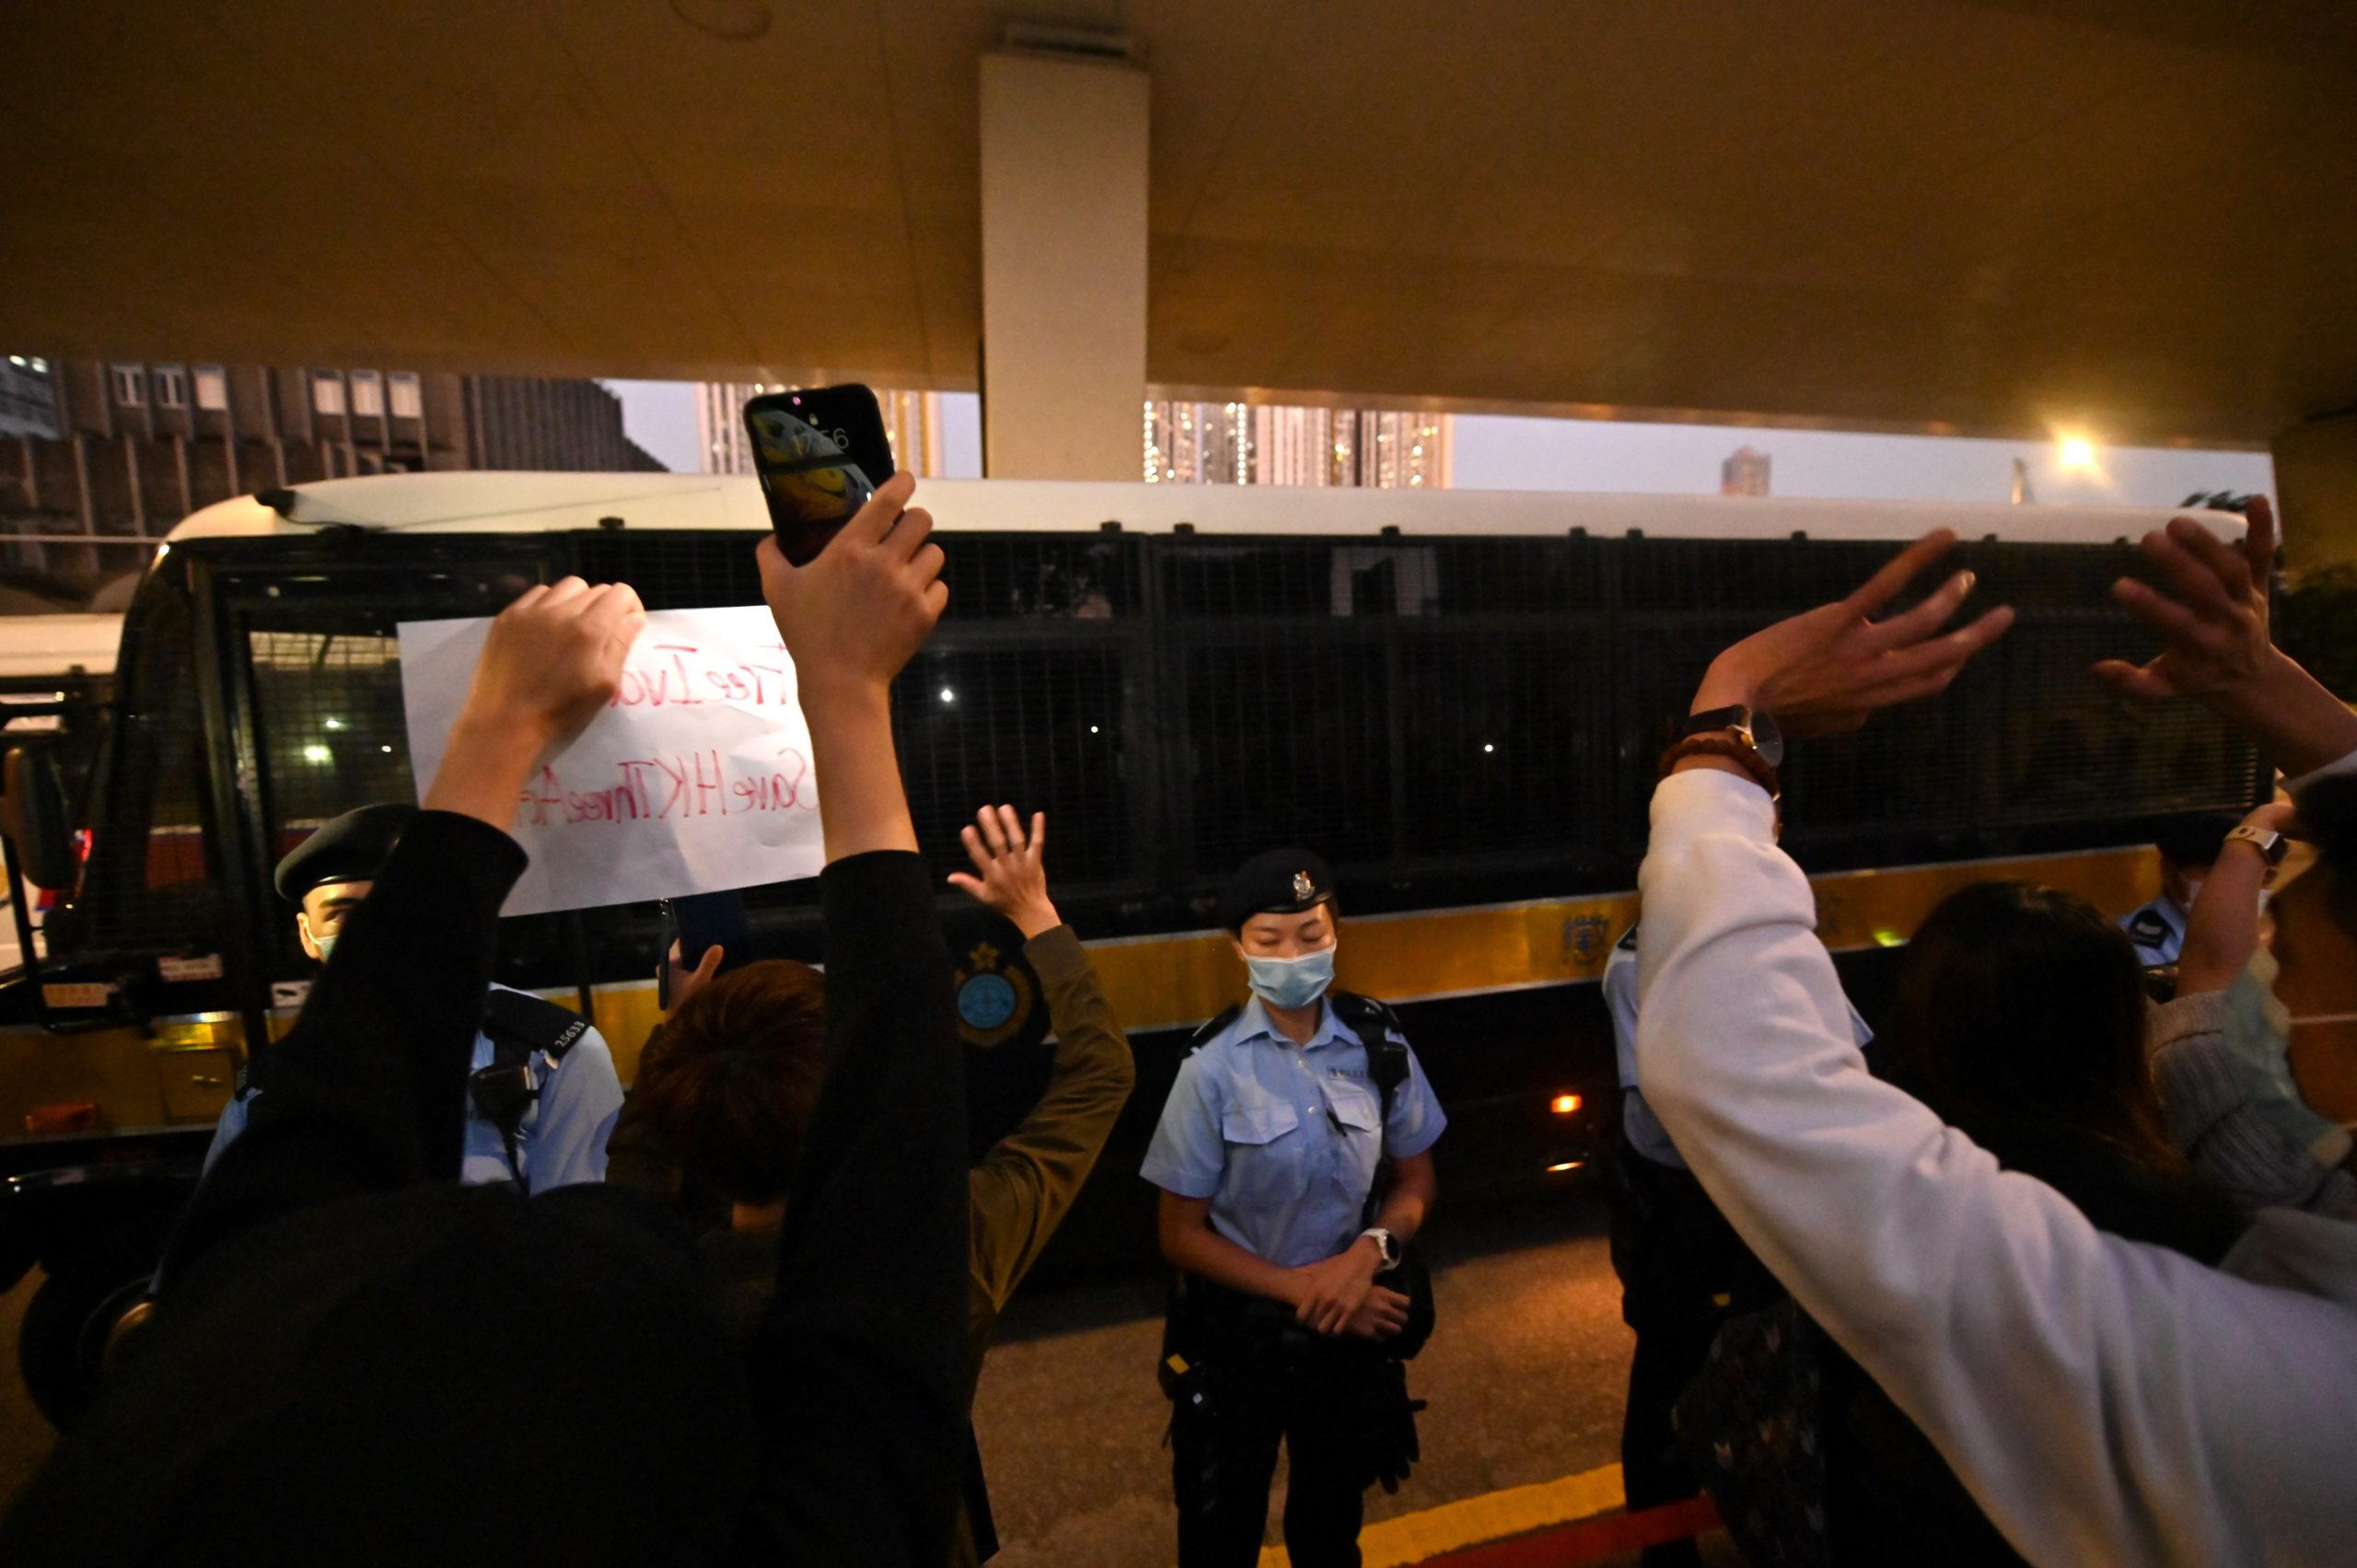 A correctional services bus purportedly carrying pro-democracy activists Agnes Chow, Ivan Lam and Joshua Wong leaves the court in Hong Kong on December 2, 2020, after the three were sentenced after pleading guilty to inciting a rally during pro-democracy protests in 2019, deepening the crackdown against Beijing's critics. (Photo by PETER PARKS/AFP via Getty Images)